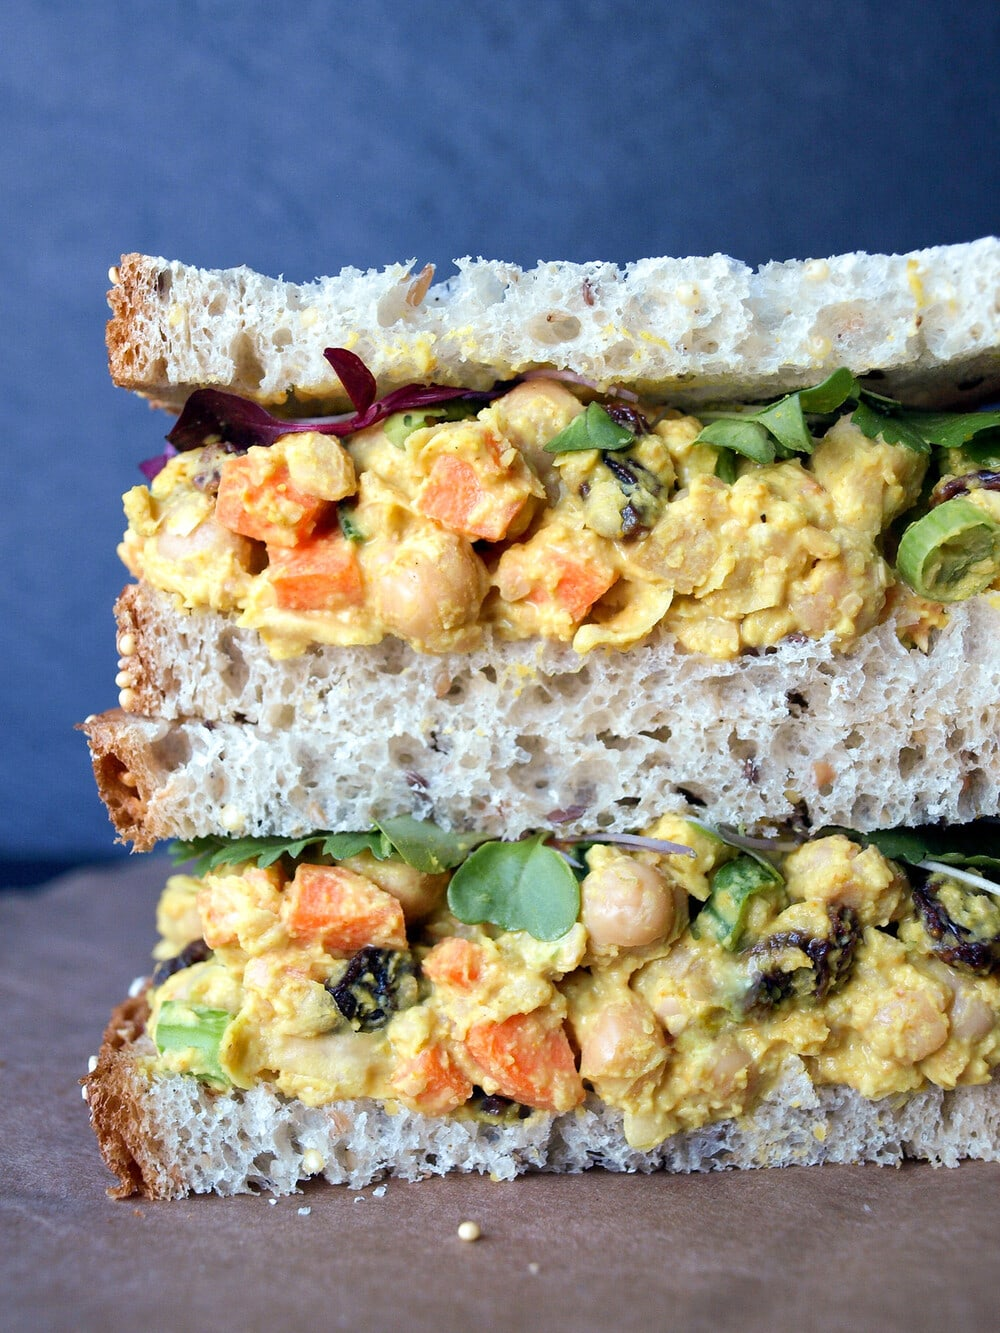 head on, up close view of curried chickpea chicken salad sandwich cut in half and stacked.